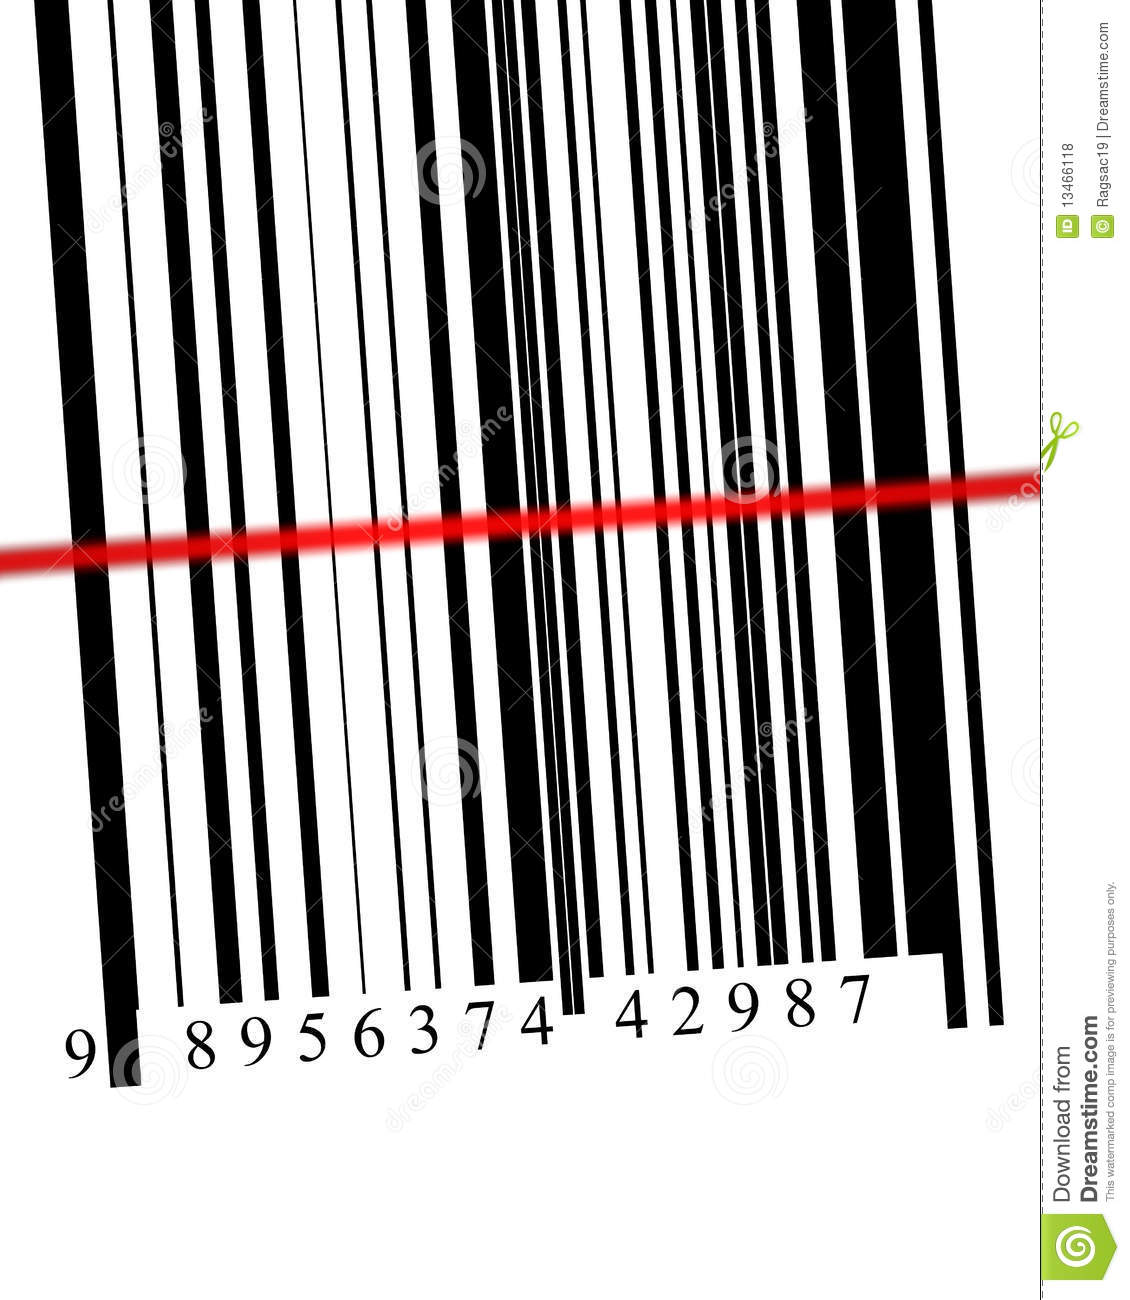 Barcode Scanned Royalty Free Stock Photos